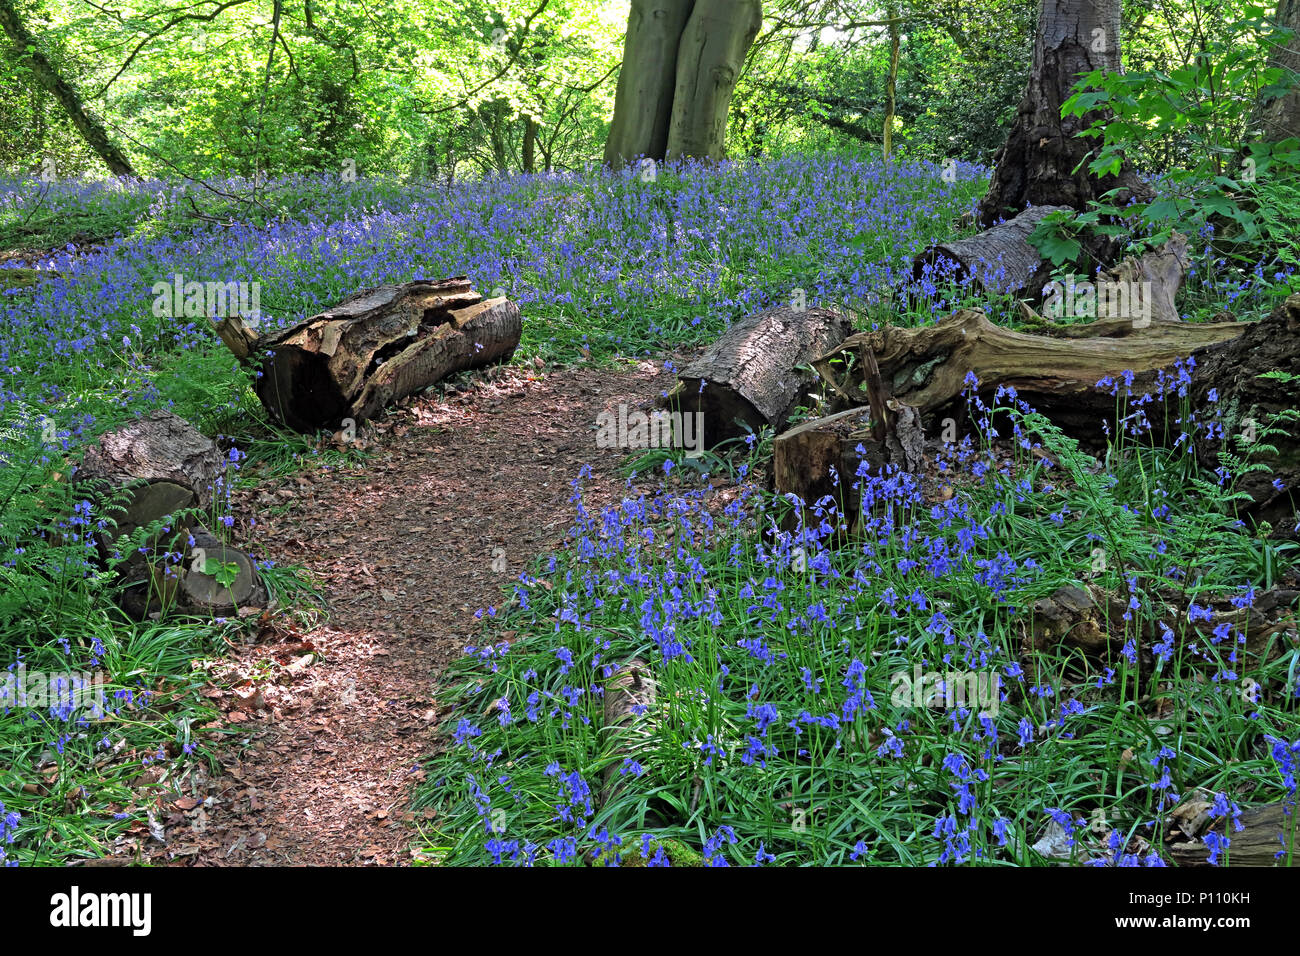 English Bluebell Wood in spring, Cheshire, England, UK - Stock Image